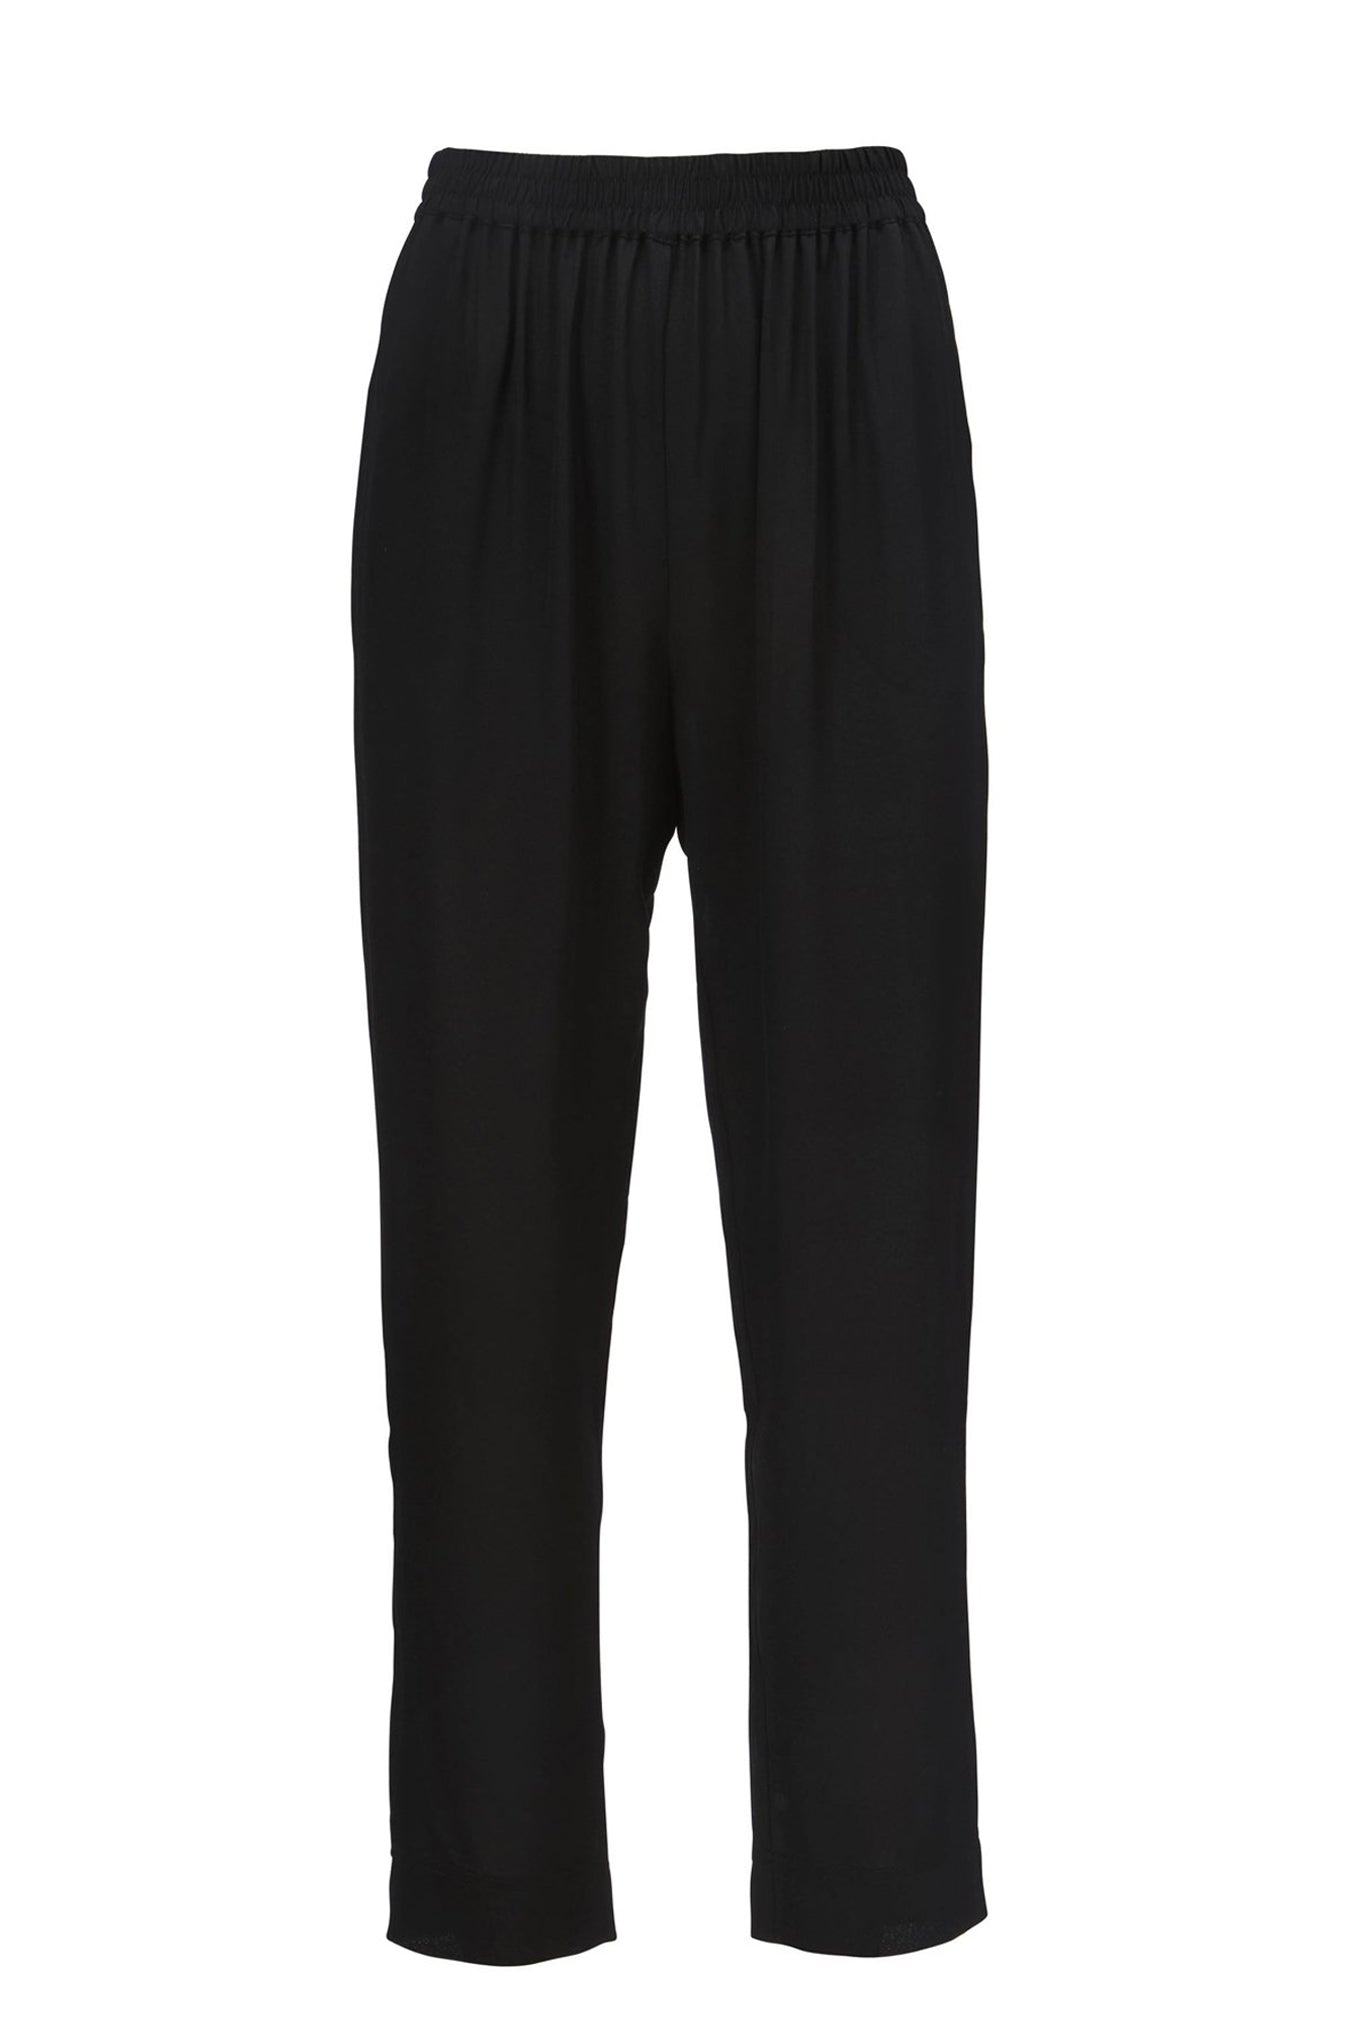 Py Pants – Black